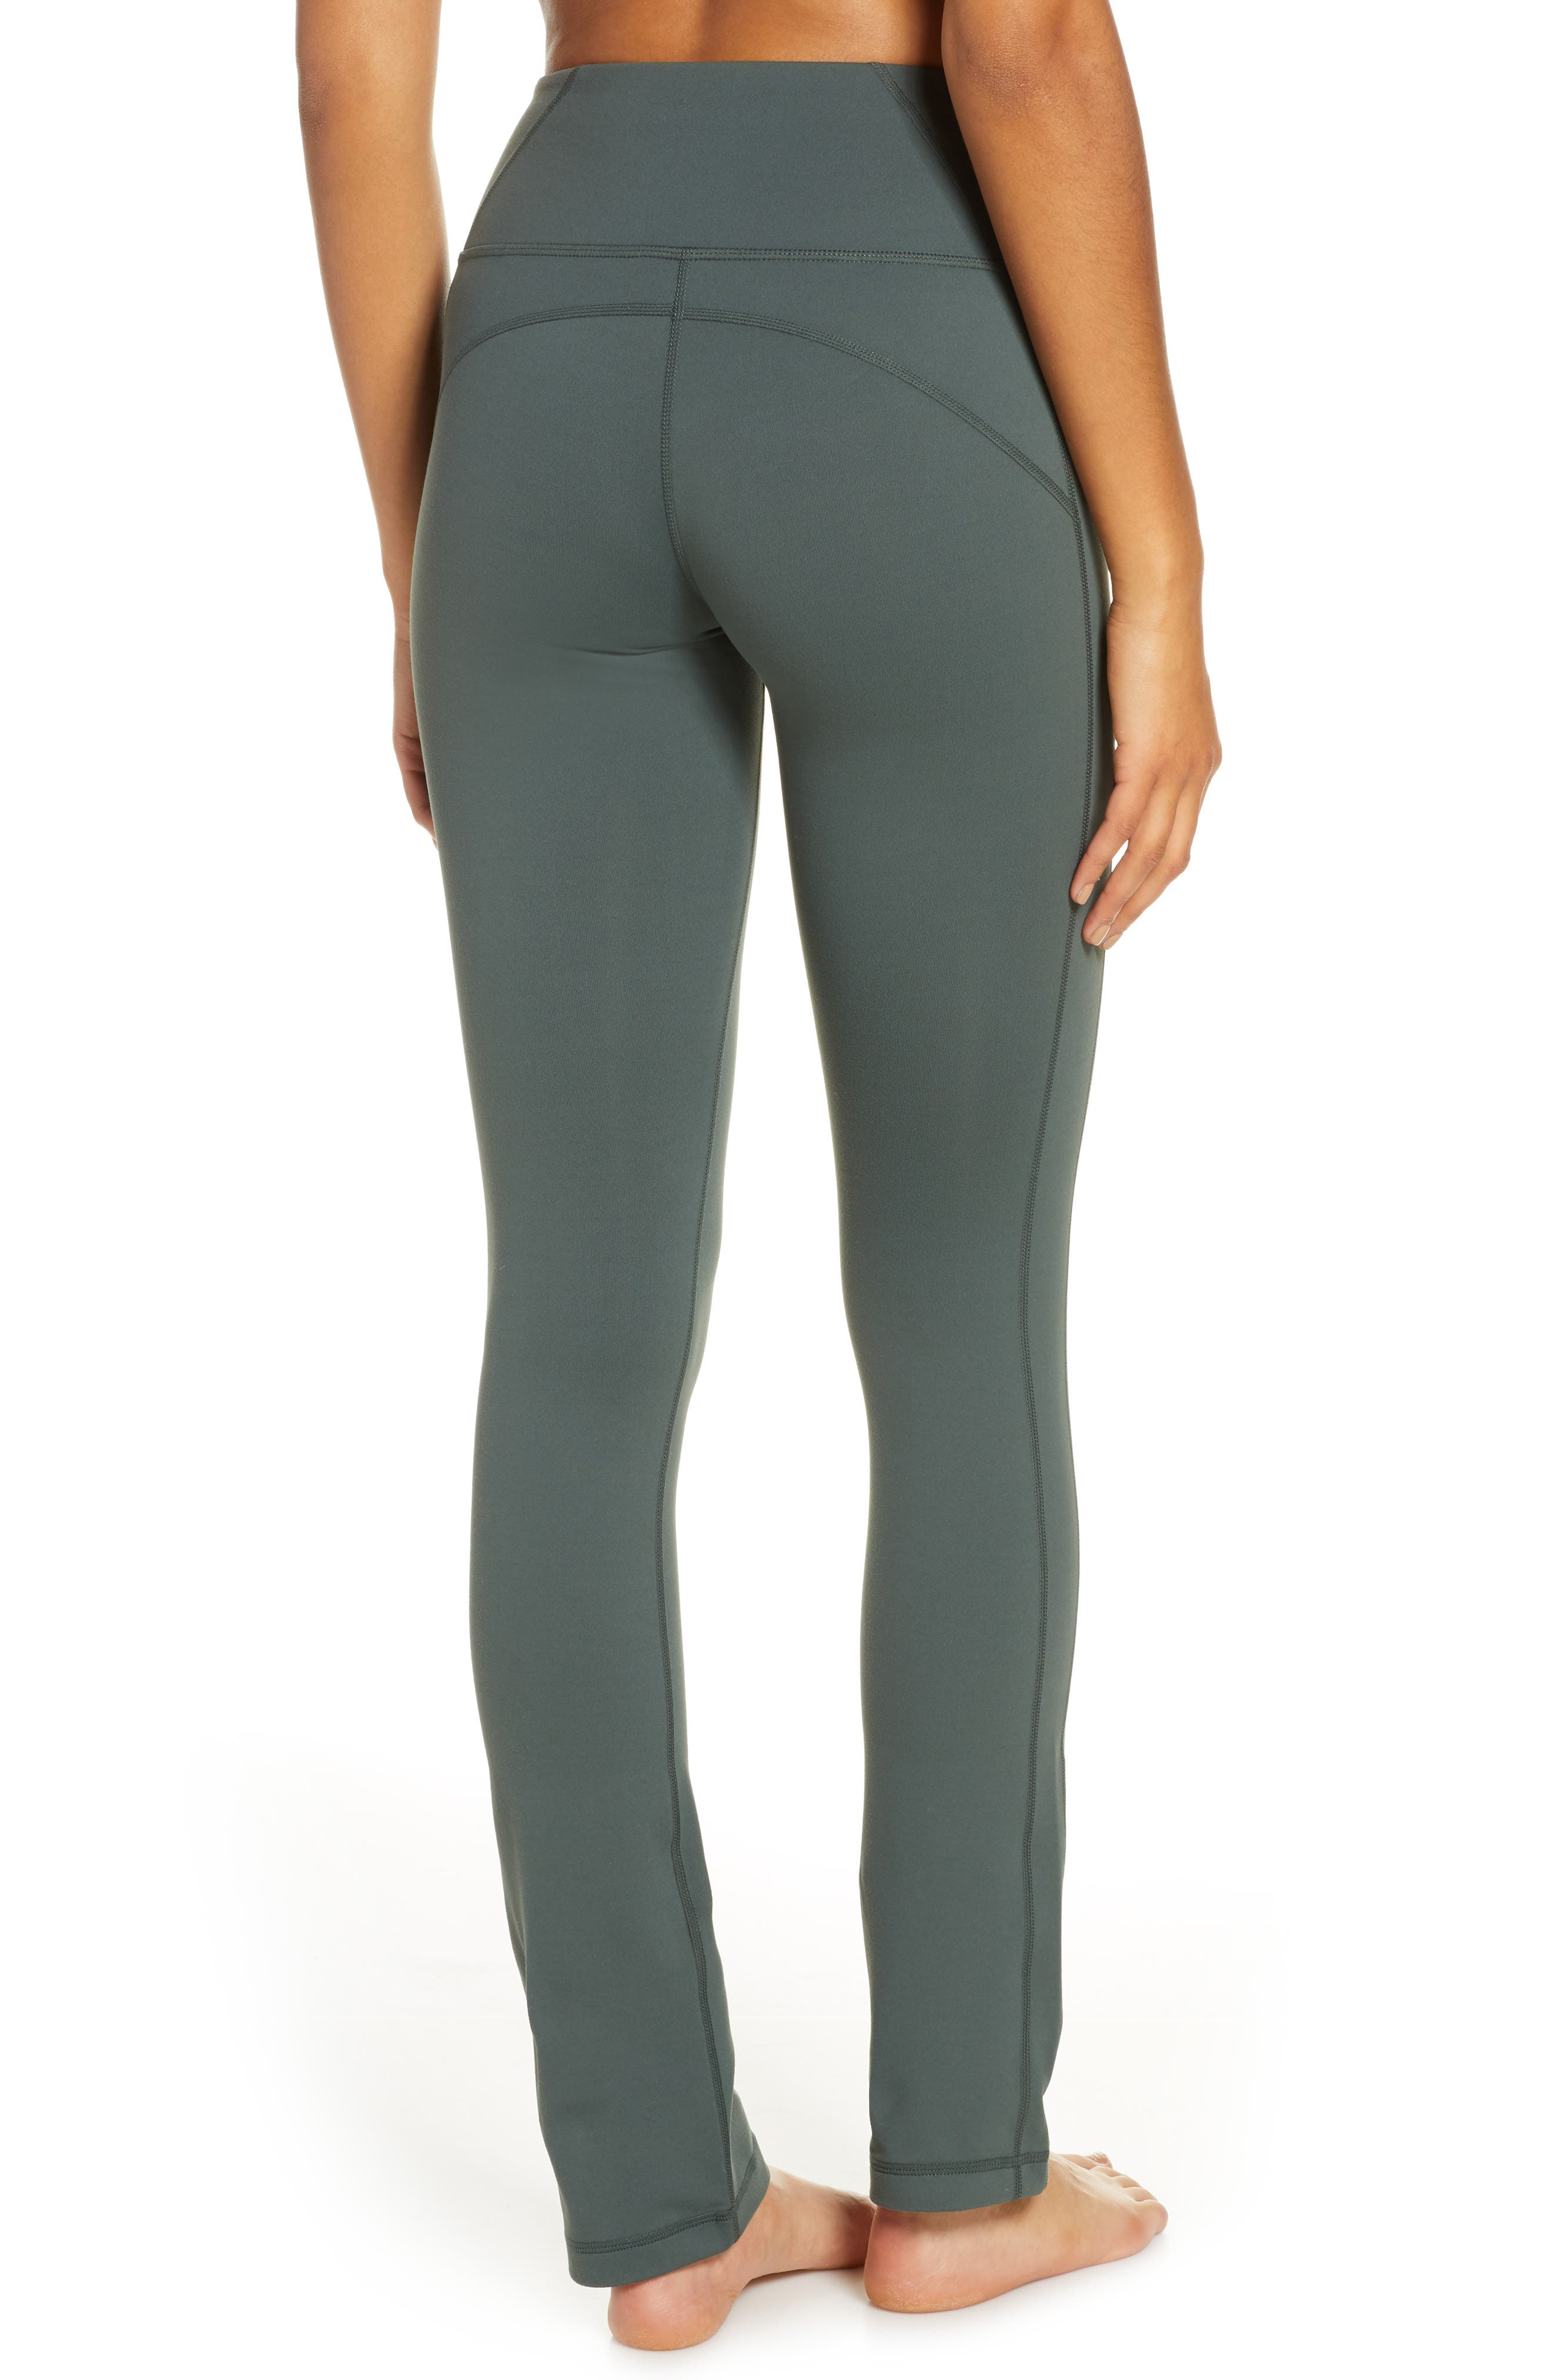 5ac9b315c8857 Women's Yoga And Barre Workout Clothes & Activewear | Nordstrom